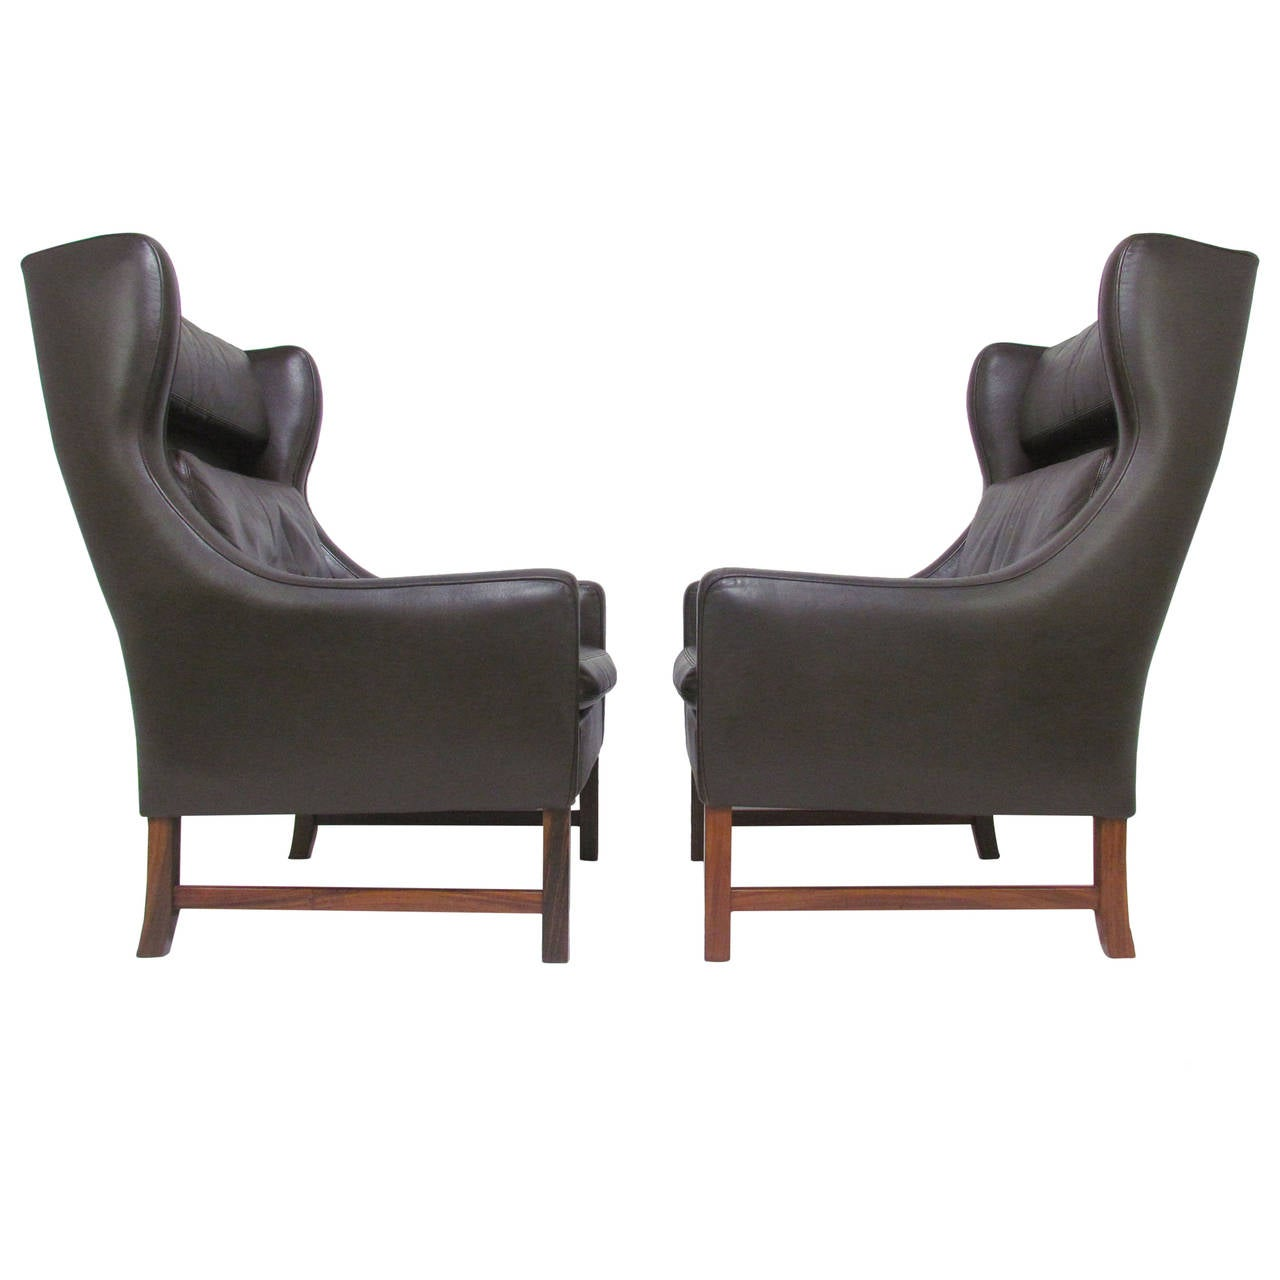 Pair Of Danish Modern Wingback Leather Lounge Chairs By